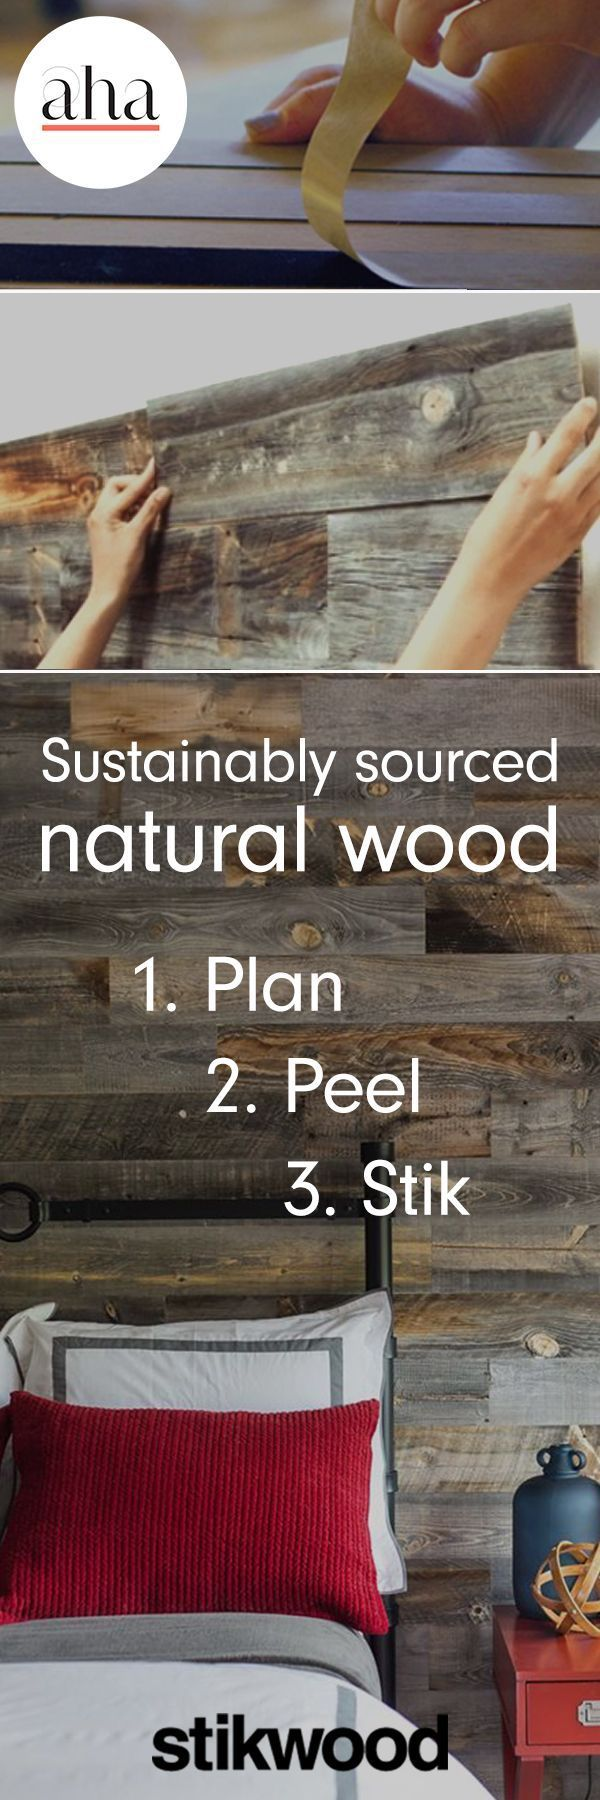 best texture images on pinterest bedrooms aged wood and graphic